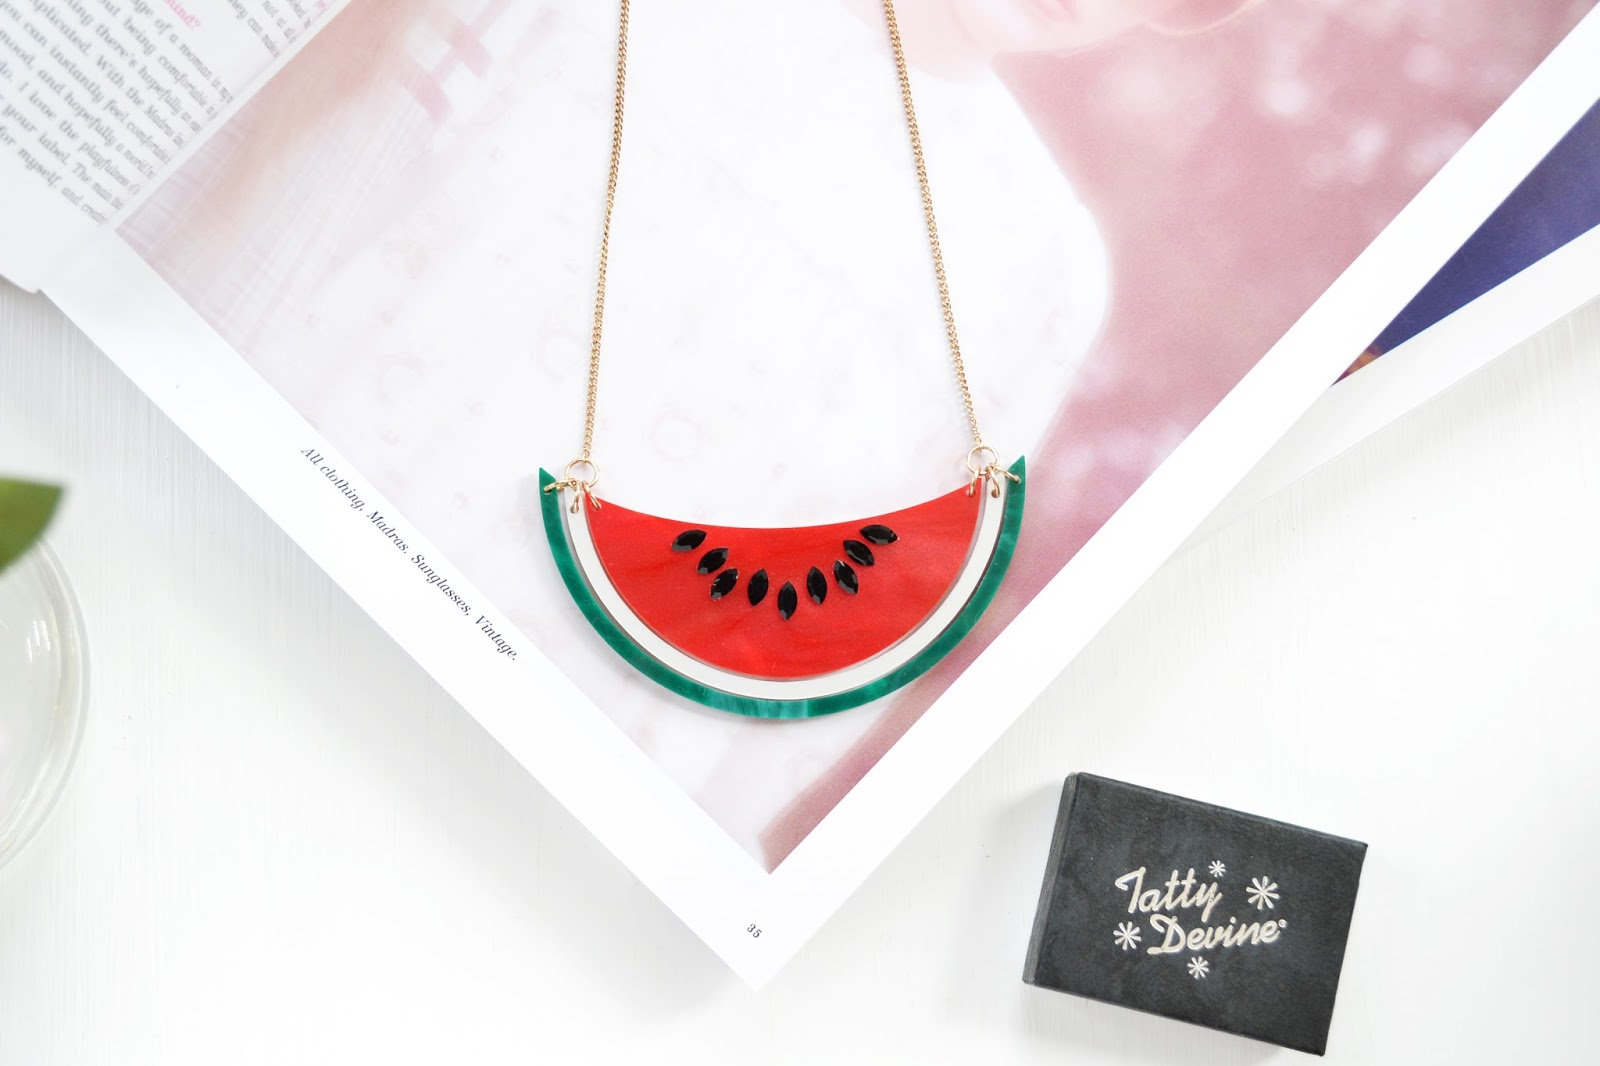 watermelon necklace from tatty devine